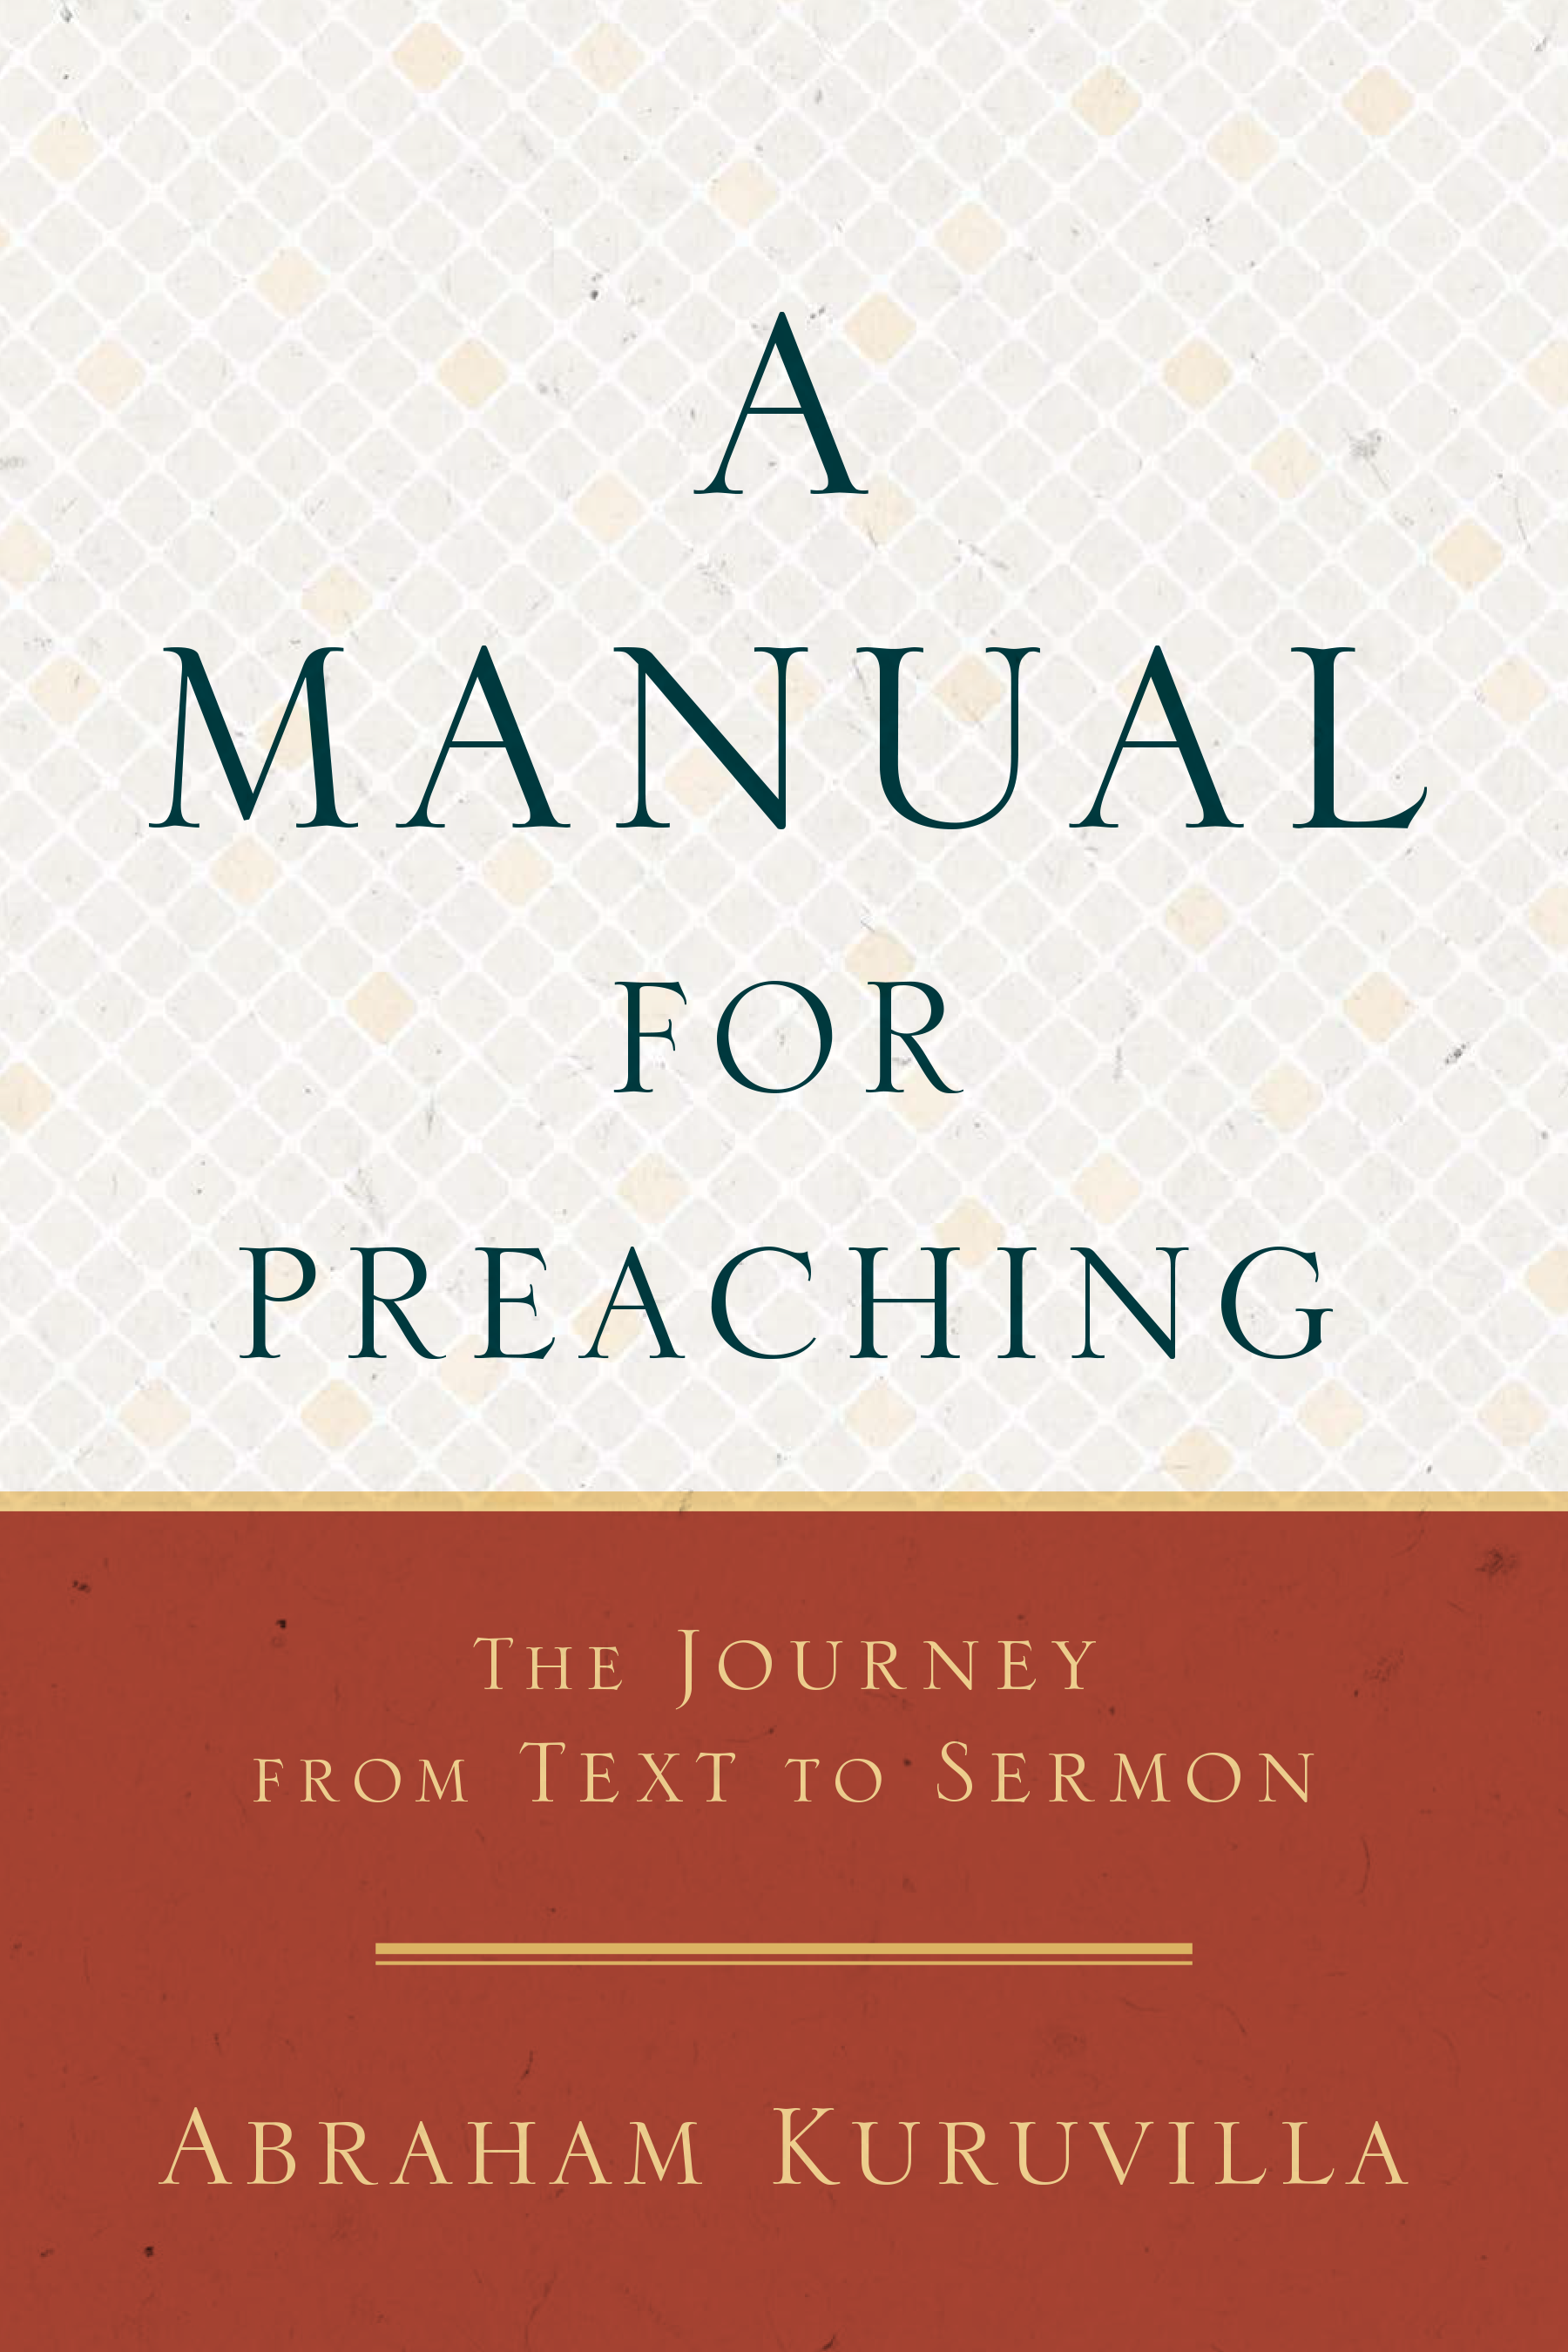 A Manual for Preaching: The Journey from Text to Sermon